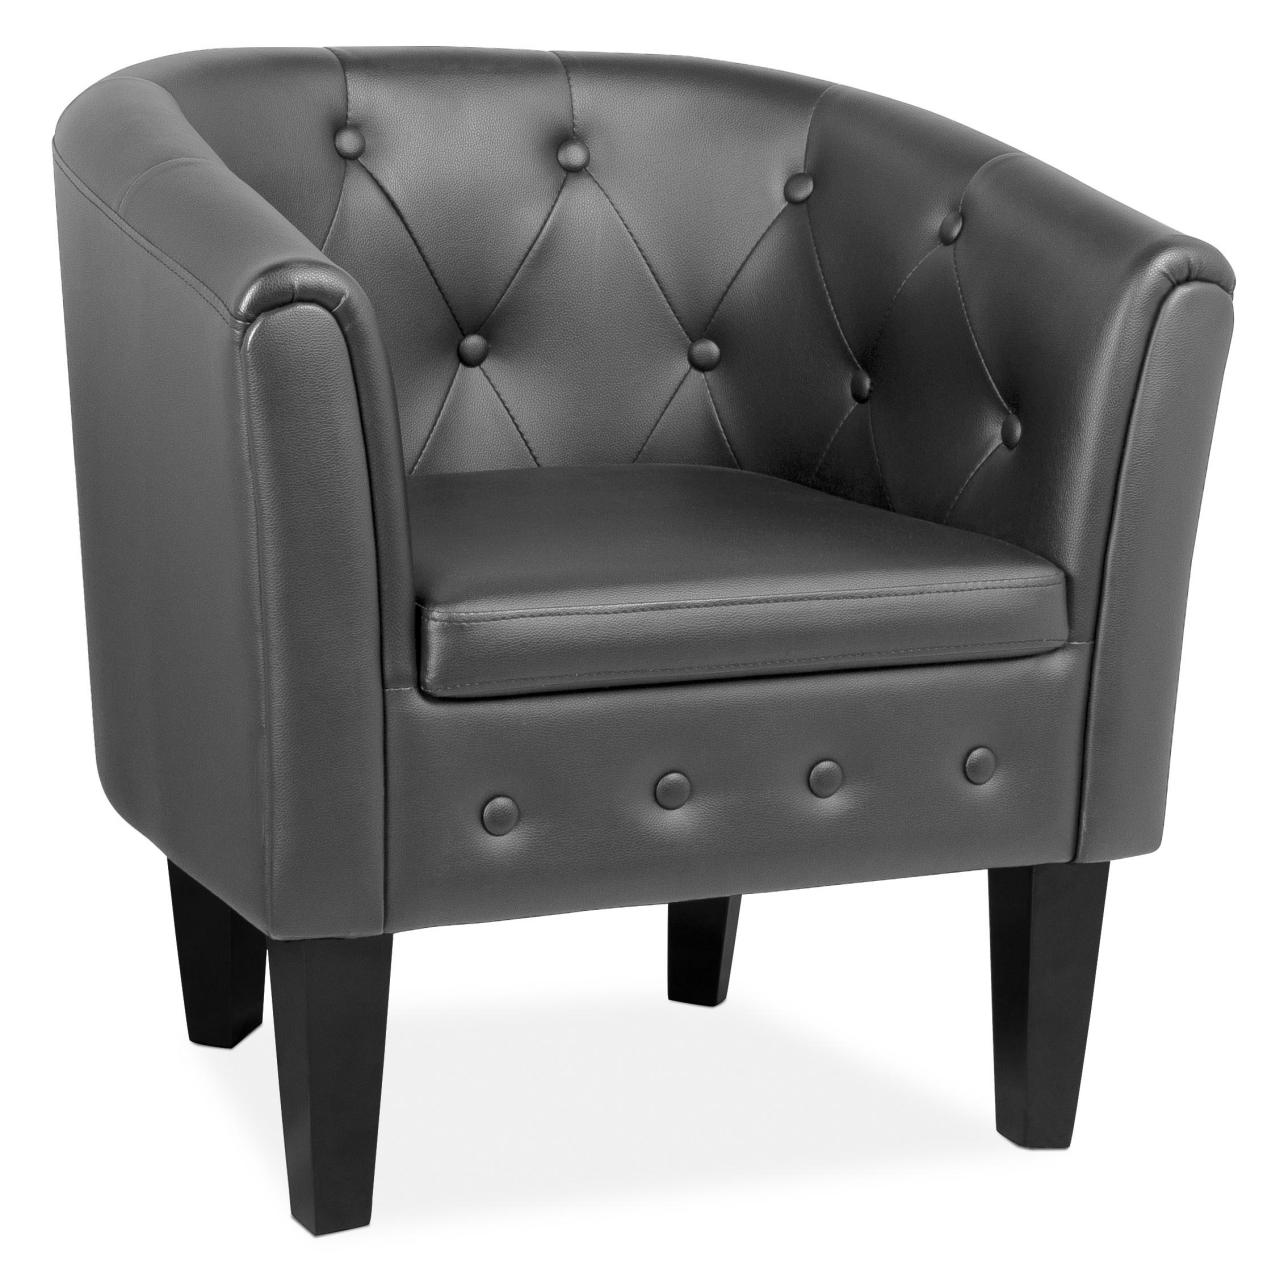 chesterfield sessel lounge club couch sofa b ro m bel clubsessel kunstleder ebay. Black Bedroom Furniture Sets. Home Design Ideas